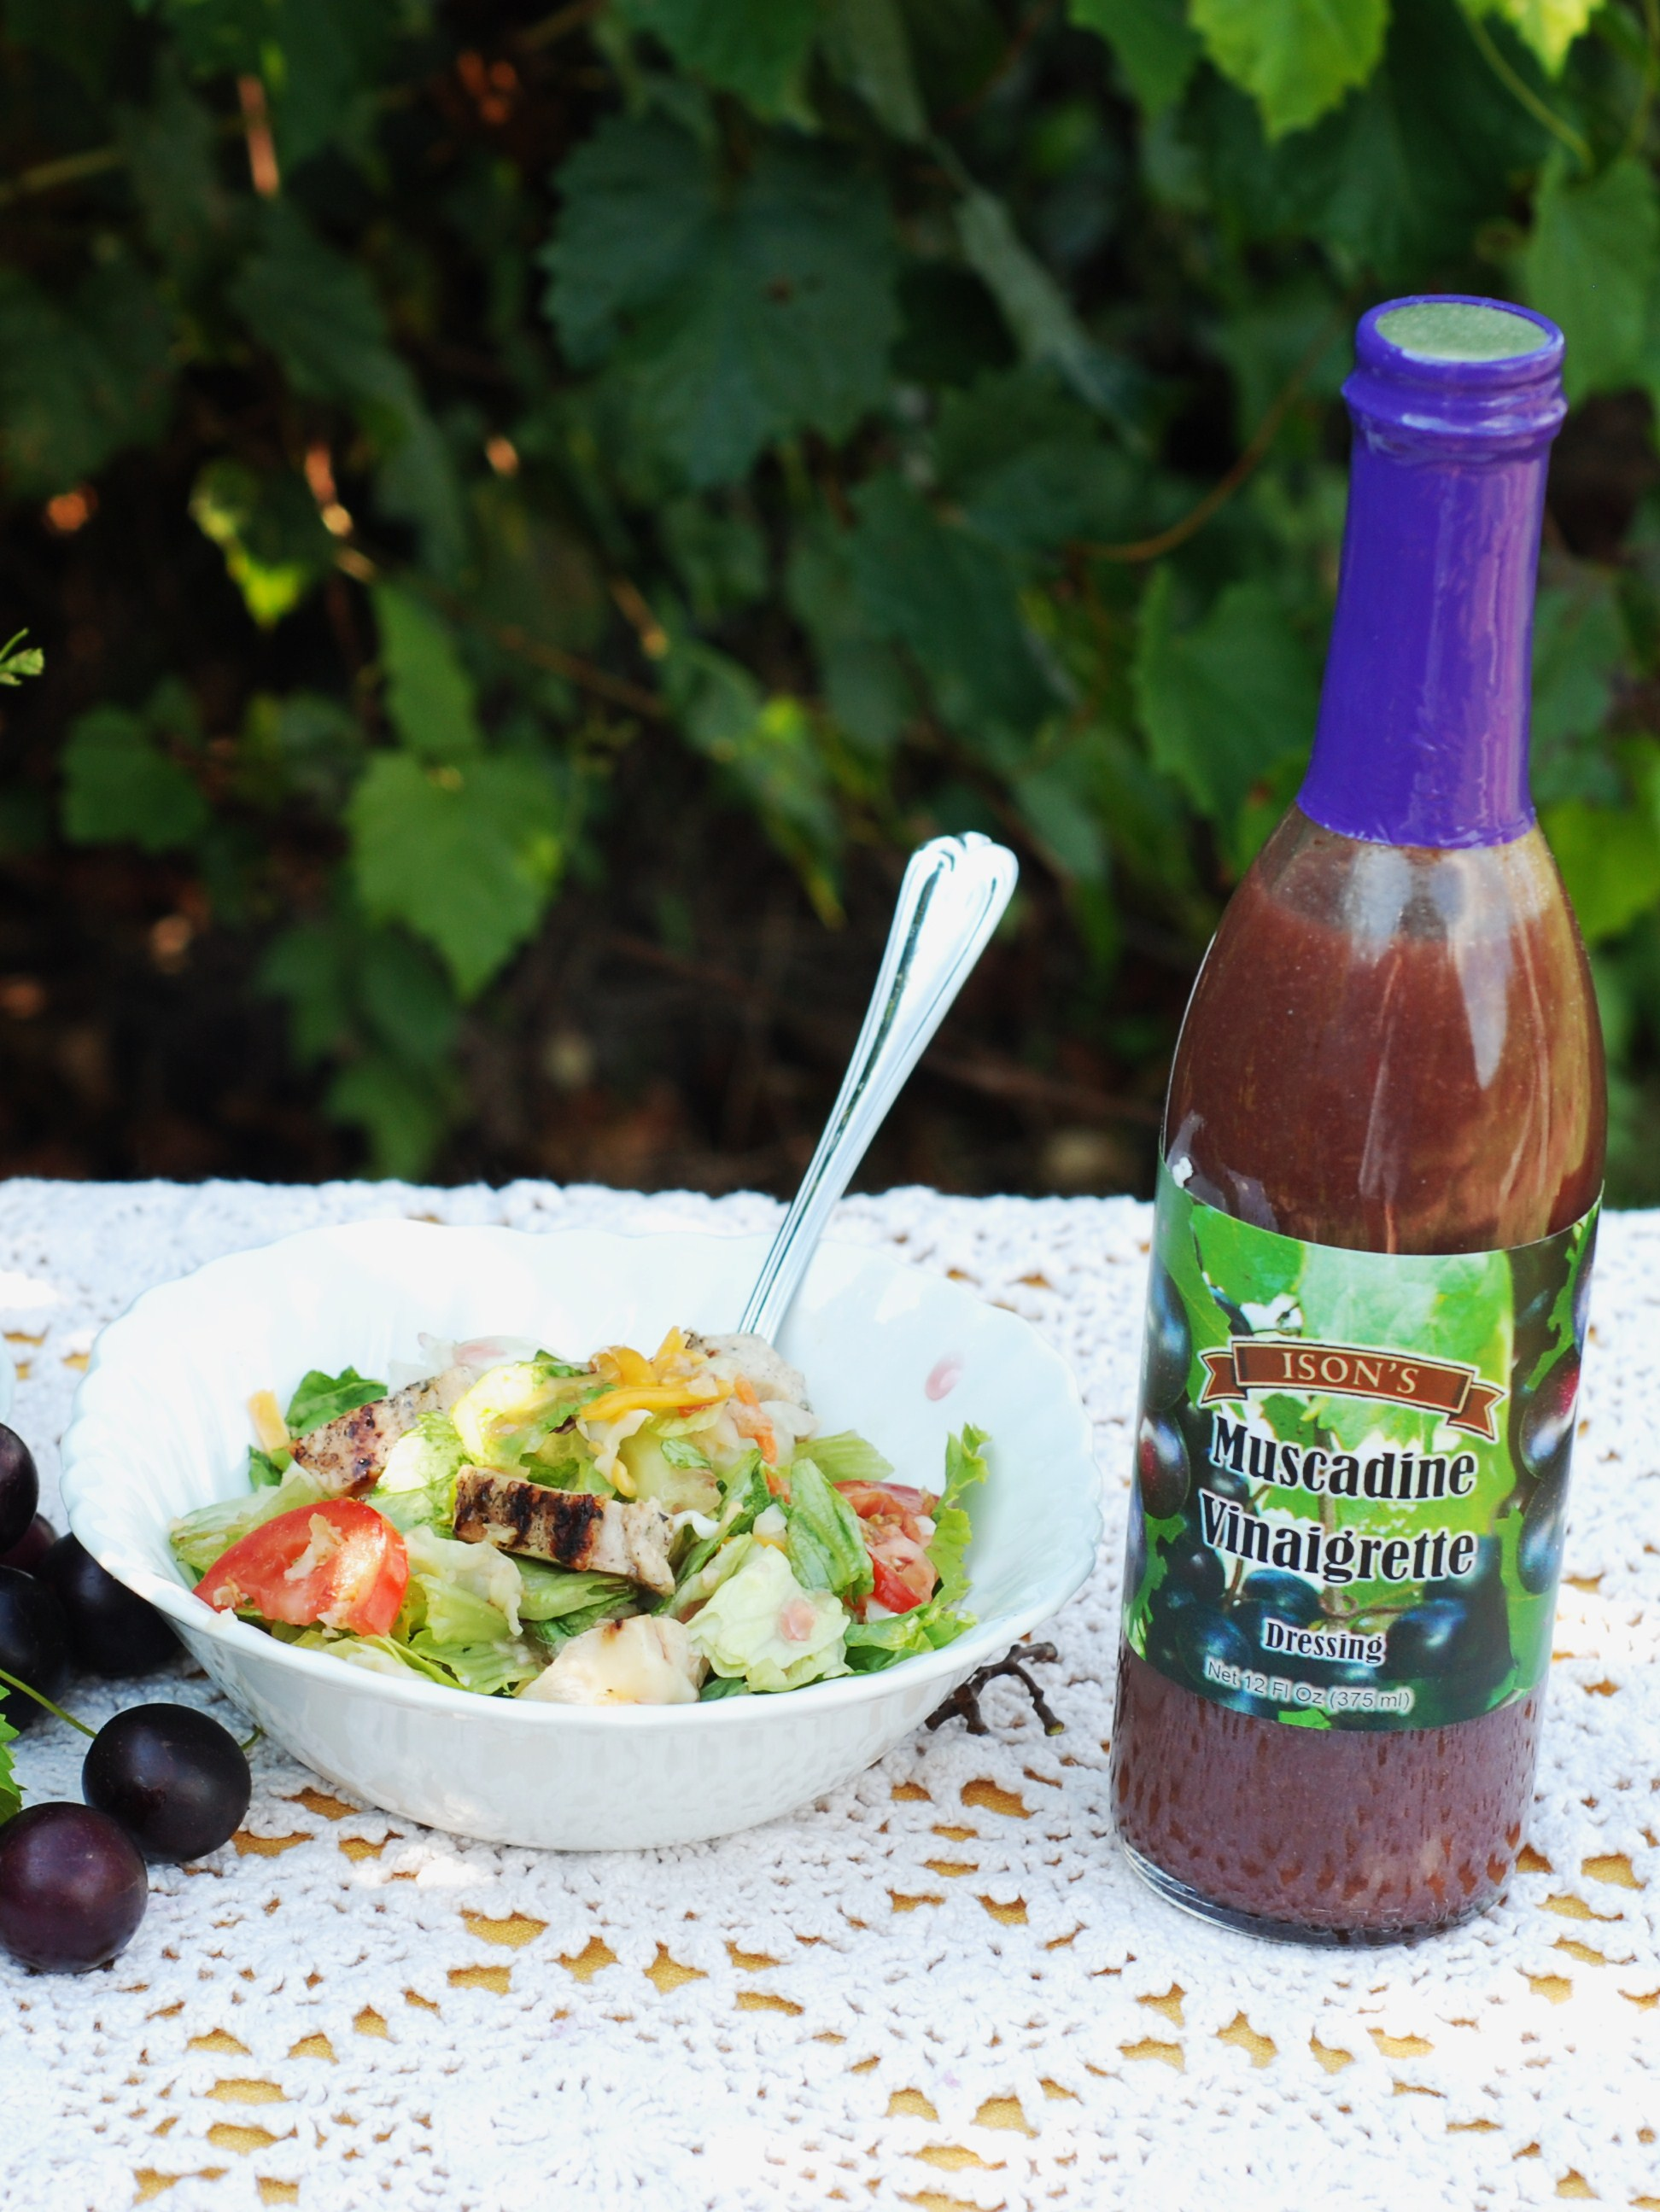 Muscadine Vinagrette. 12 oz. A delicious salad dressing.